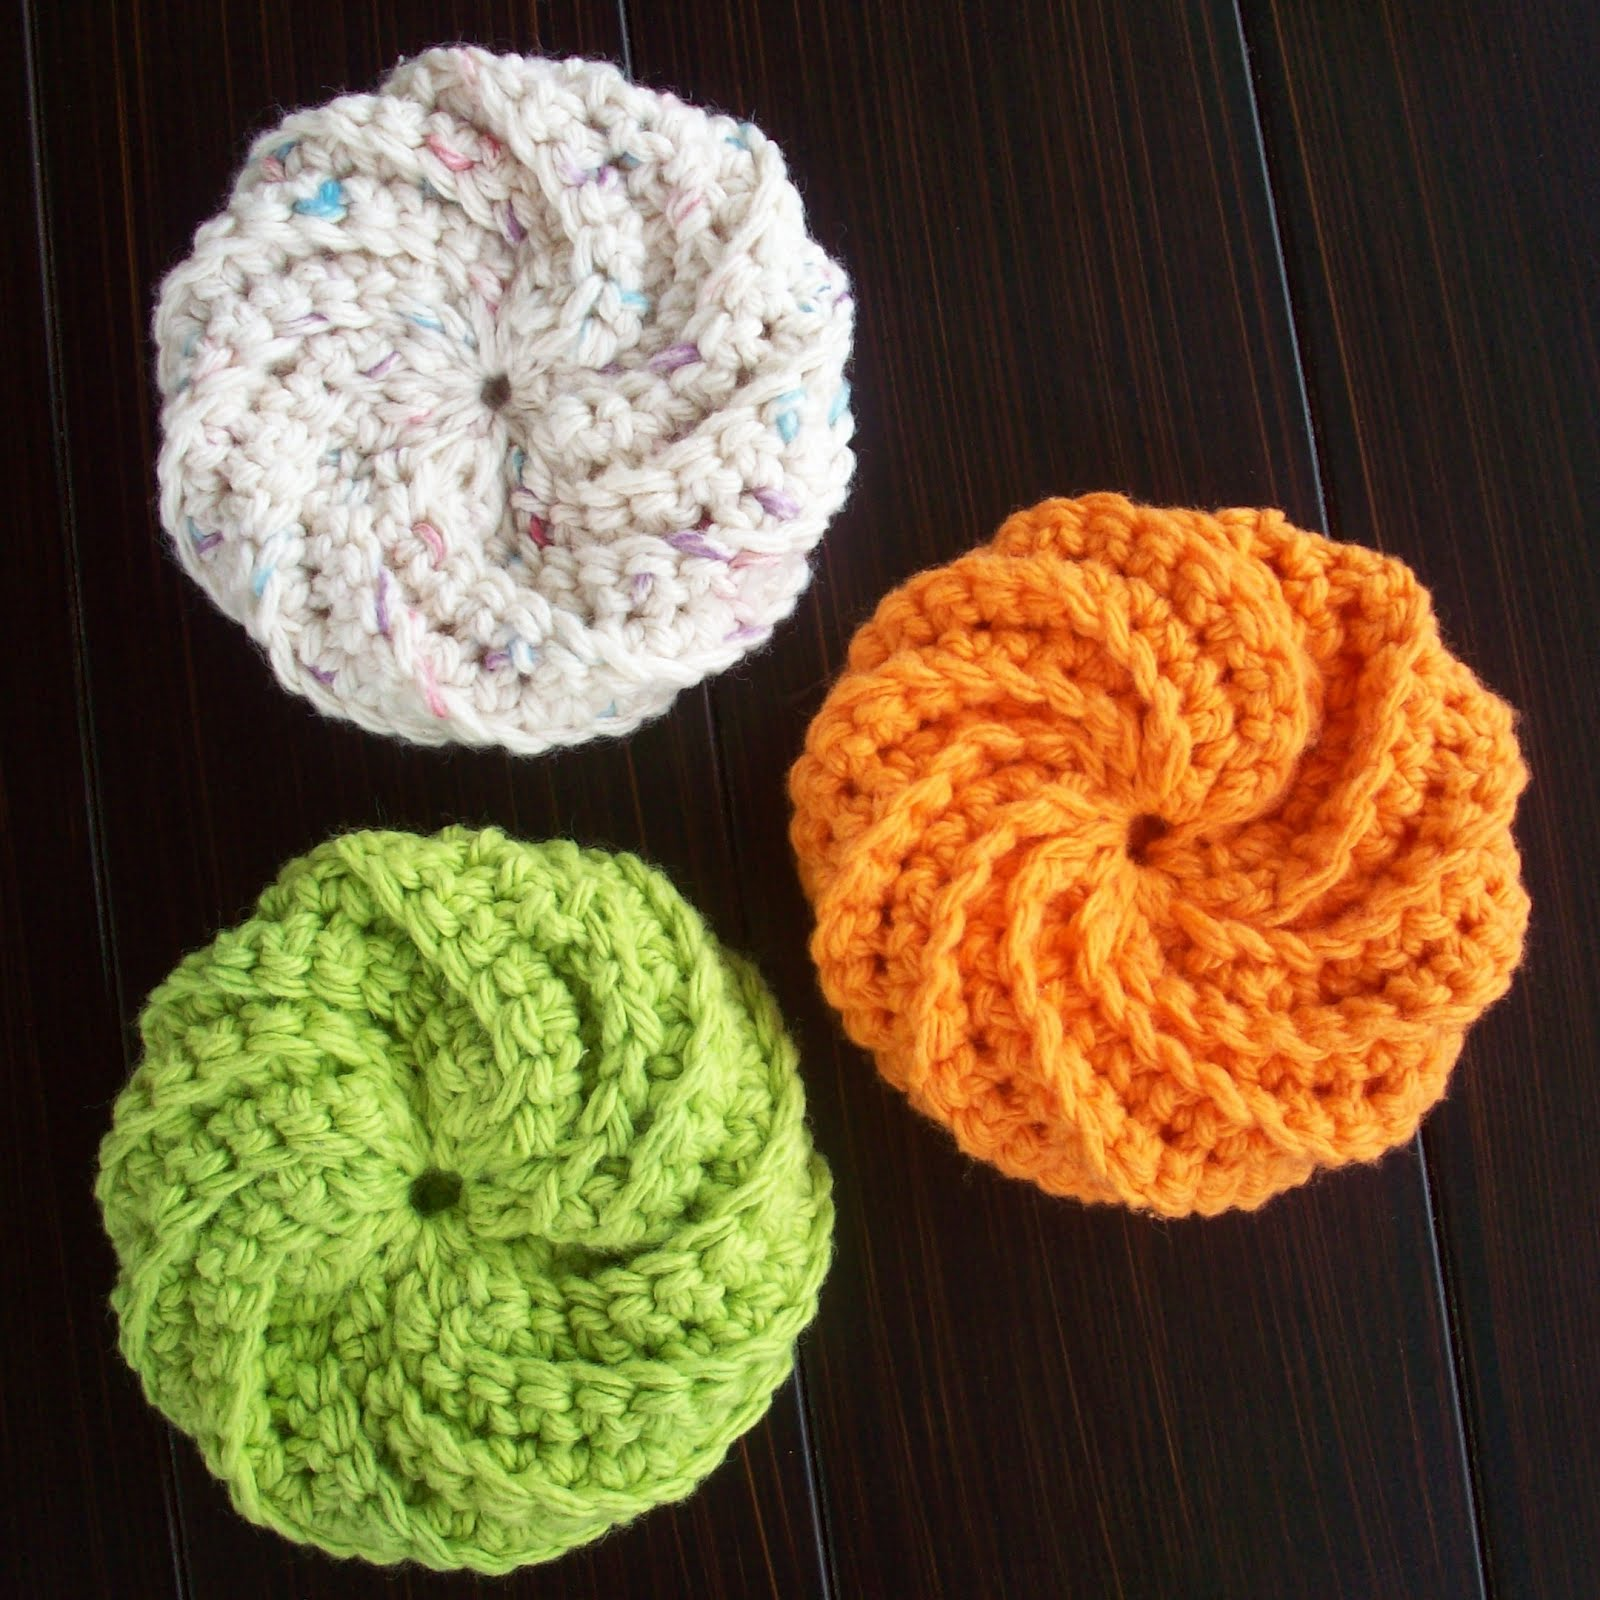 Crocheting Scrubbies : Crochet Scrubbies